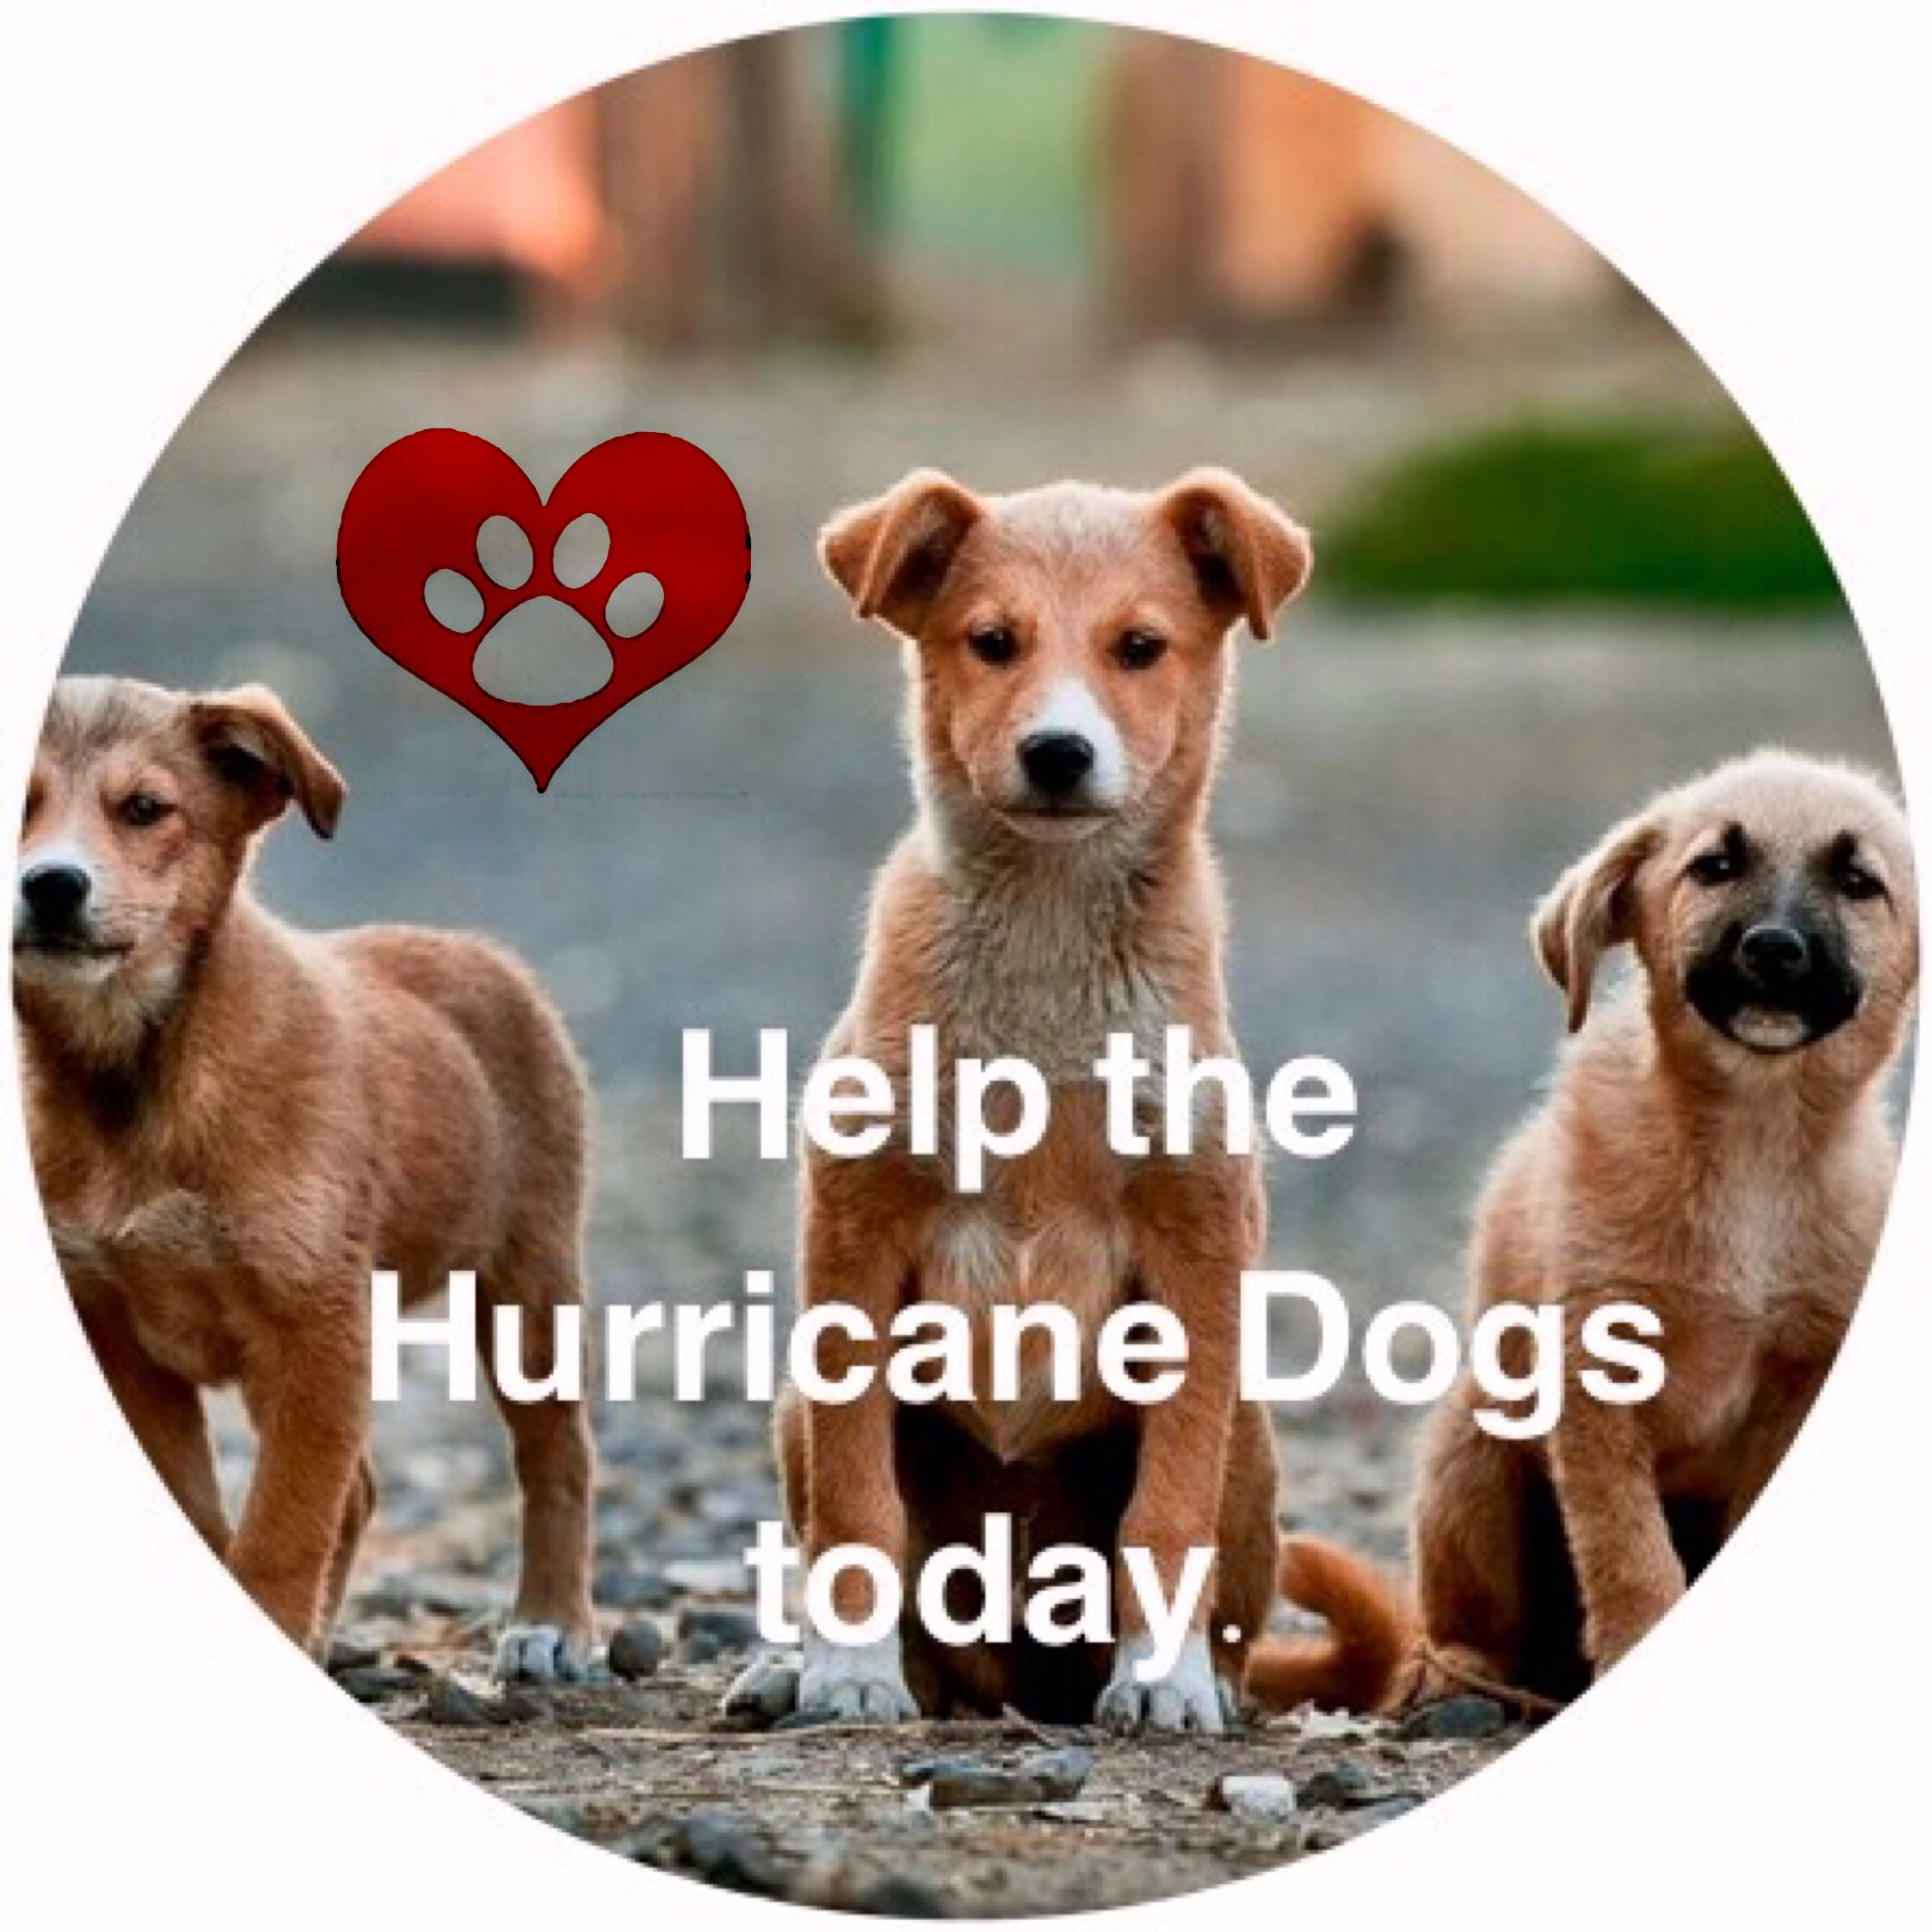 Help save the hurricane dogs.